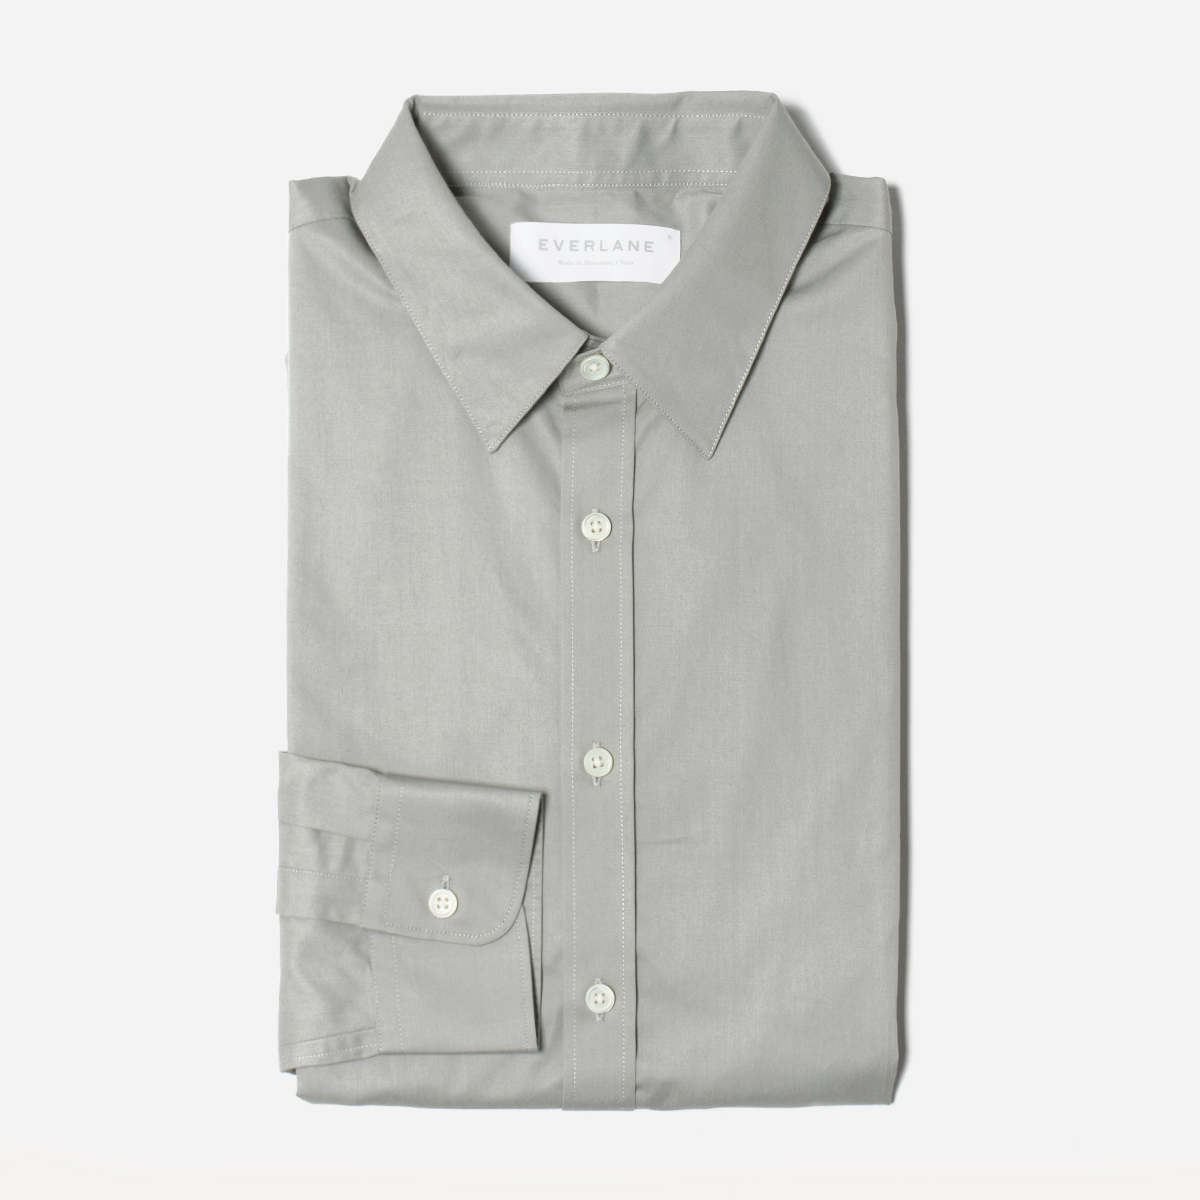 The Italian Dress Shirt - Grey